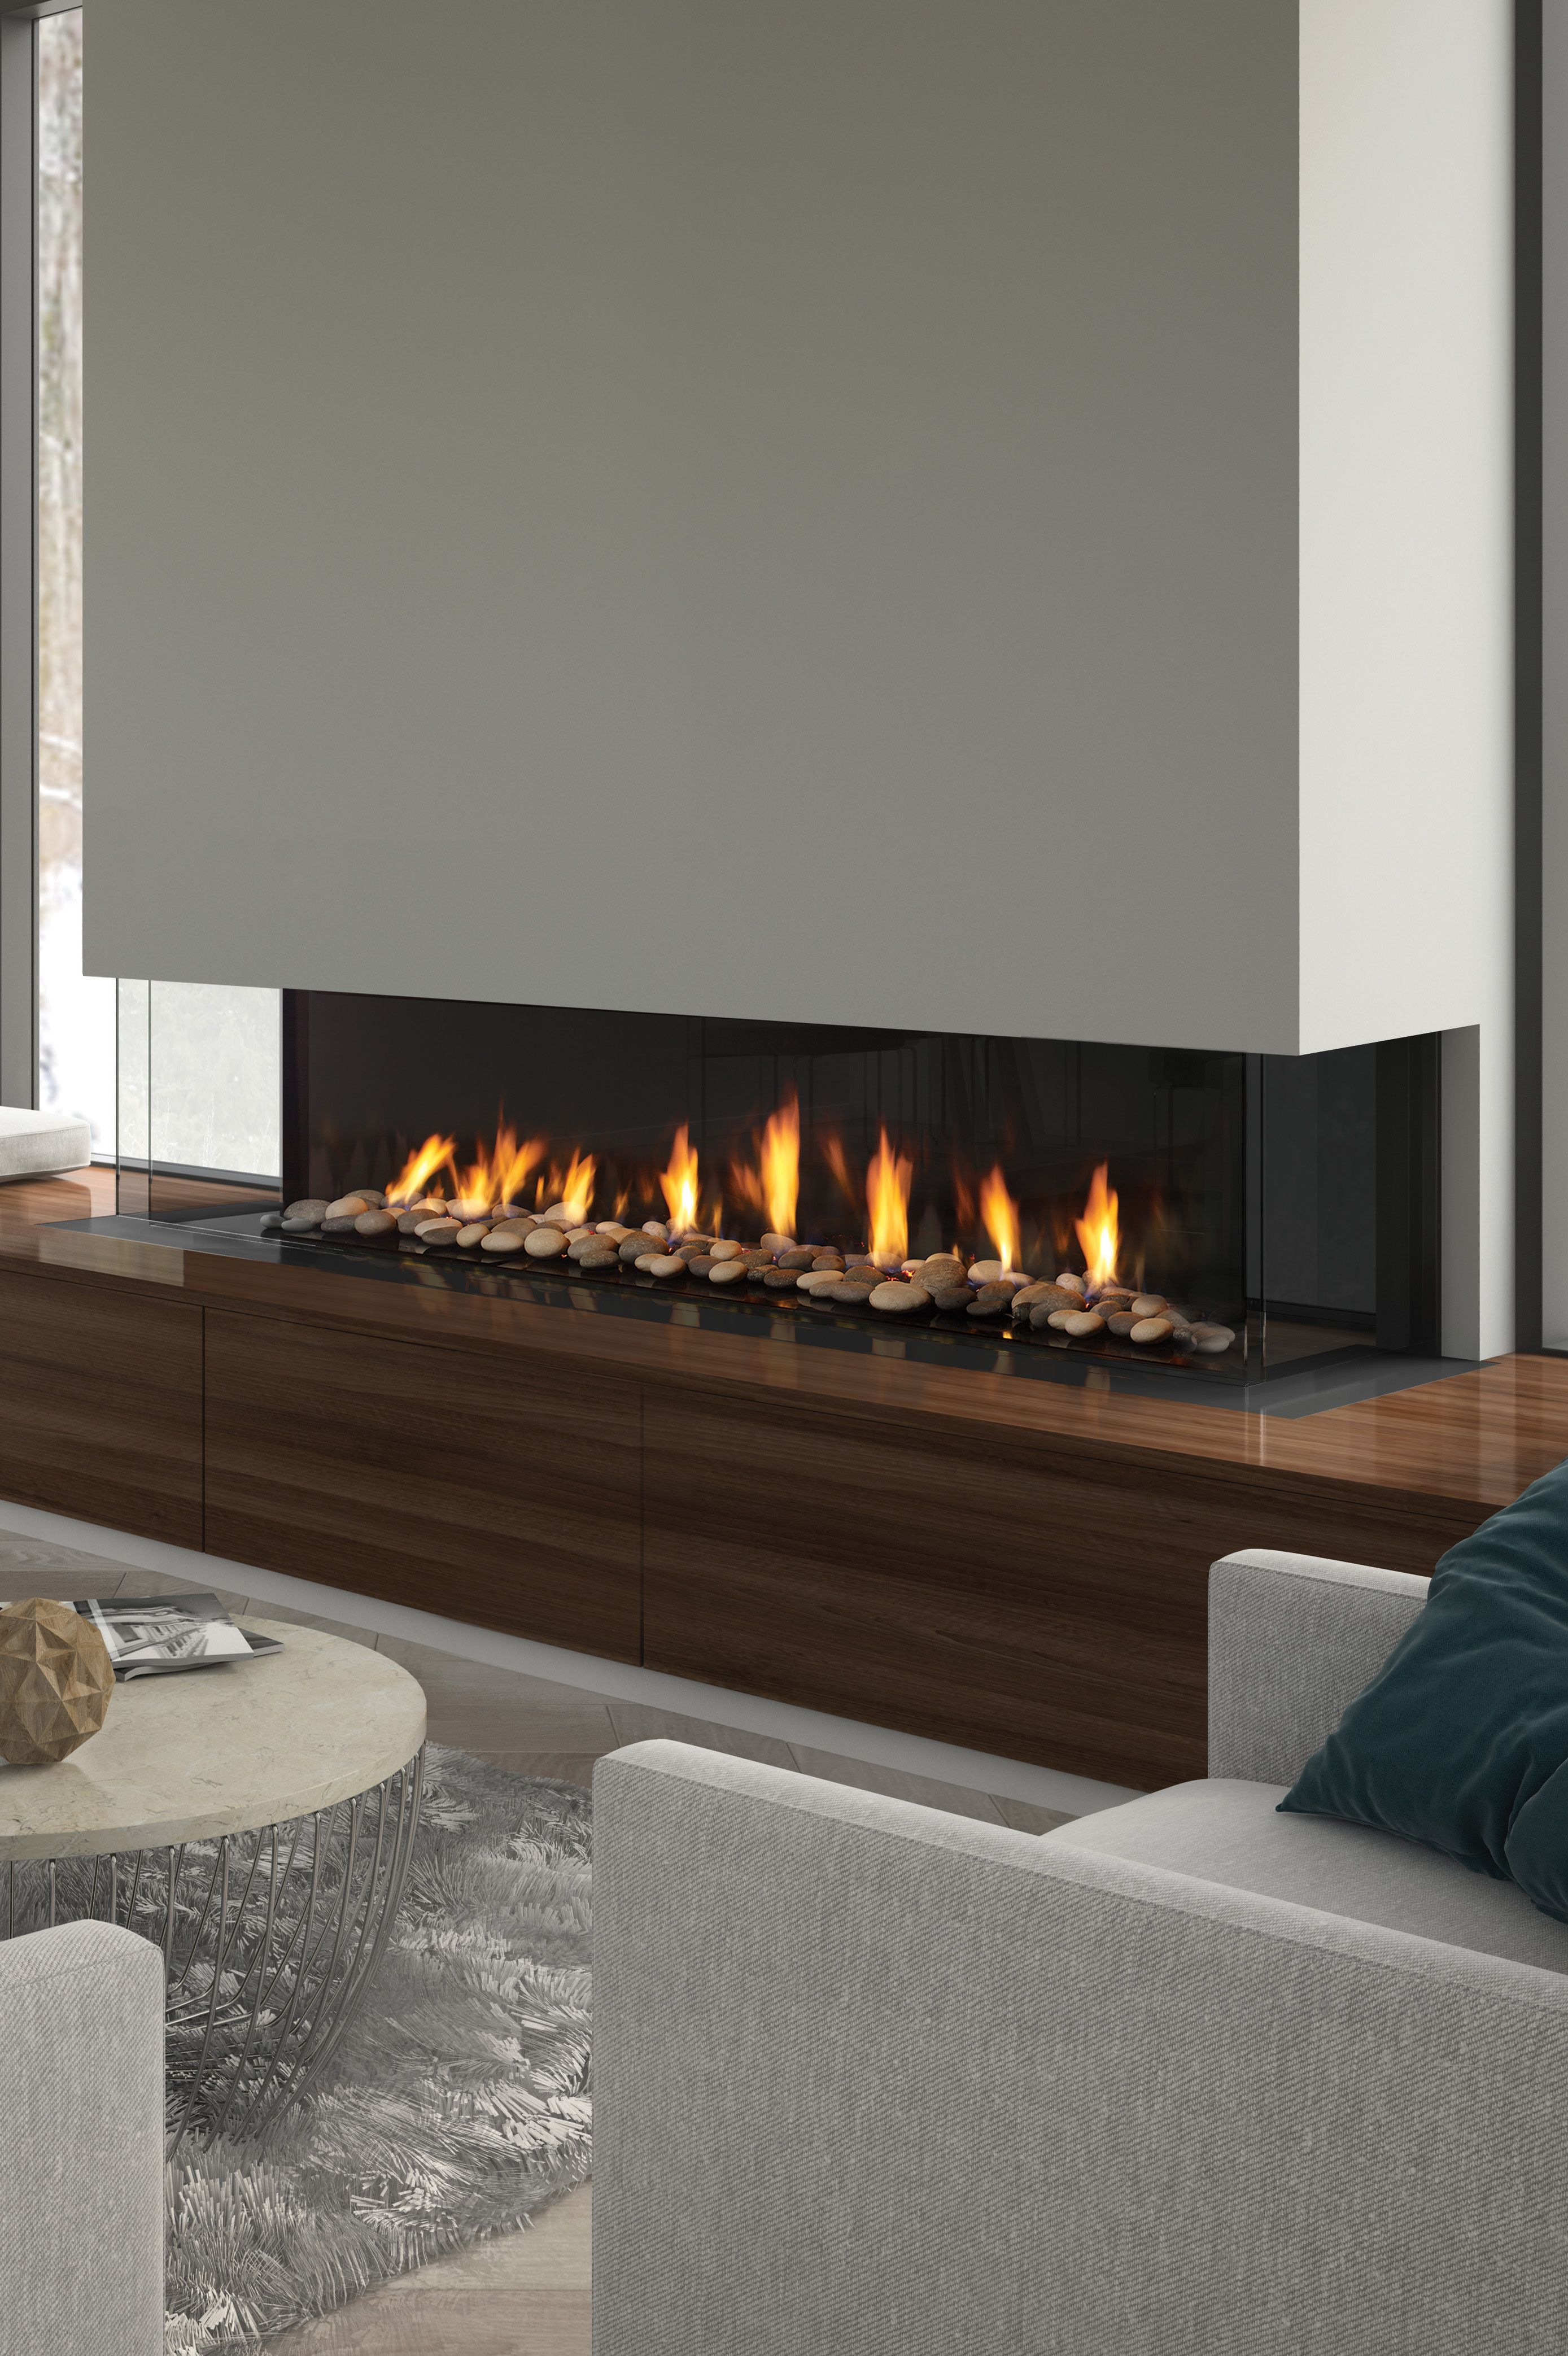 The Regency City Series San Francisco Bay 72 Fireplace Gives You Even More Options With City Series C Fireplace Modern Design Modern Fireplace Glass Fireplace